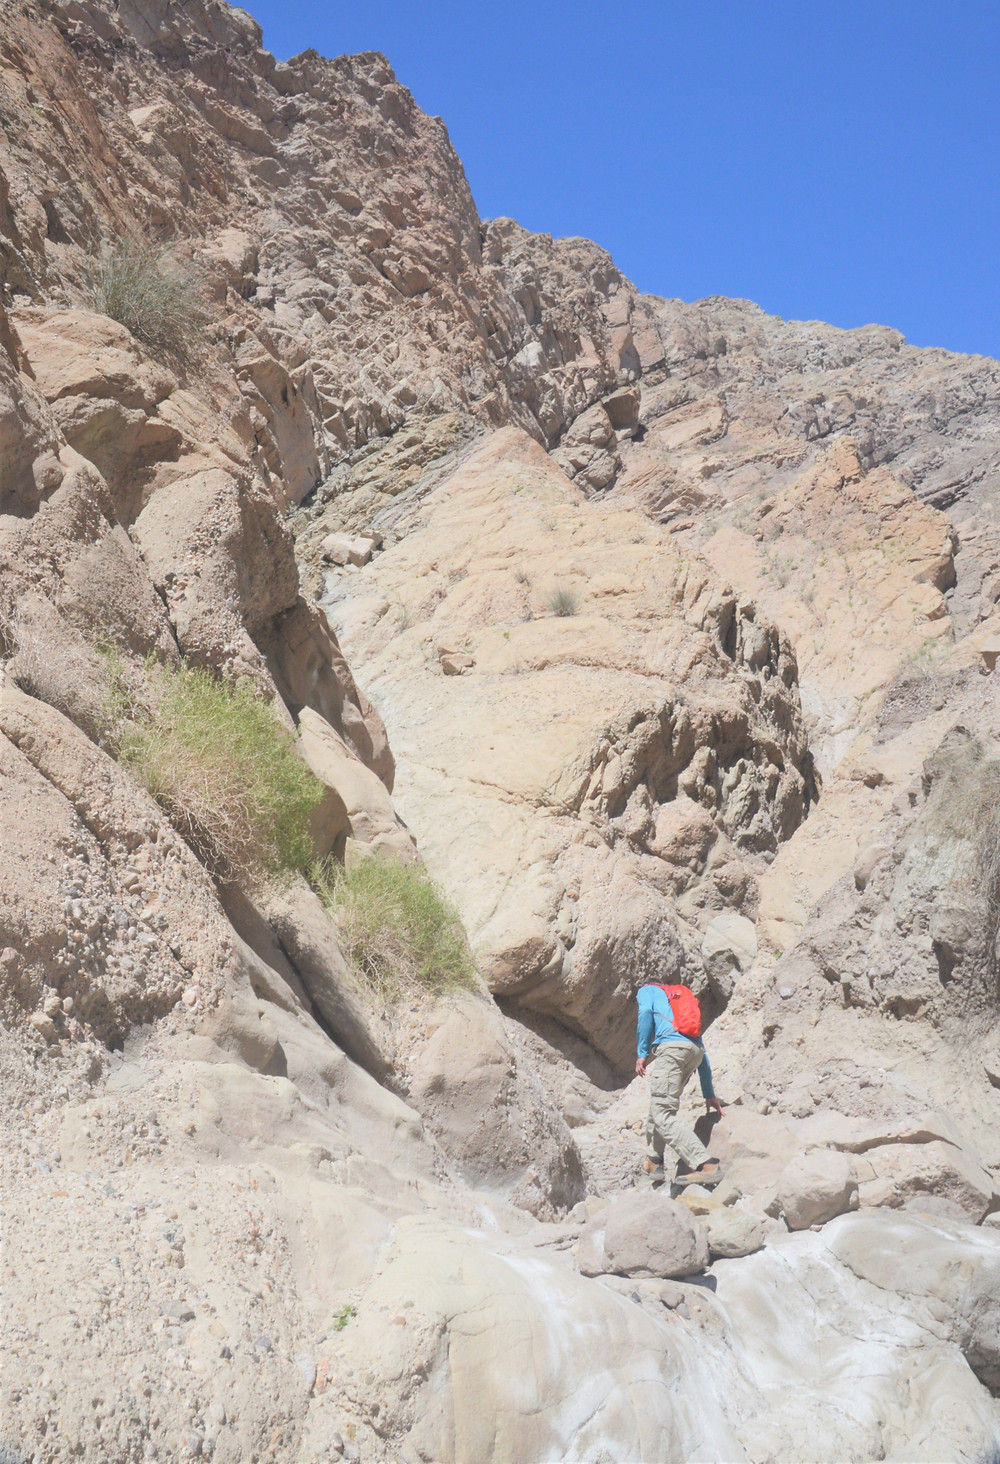 Water erosion and smoothing of rock surface in Mecca Hills